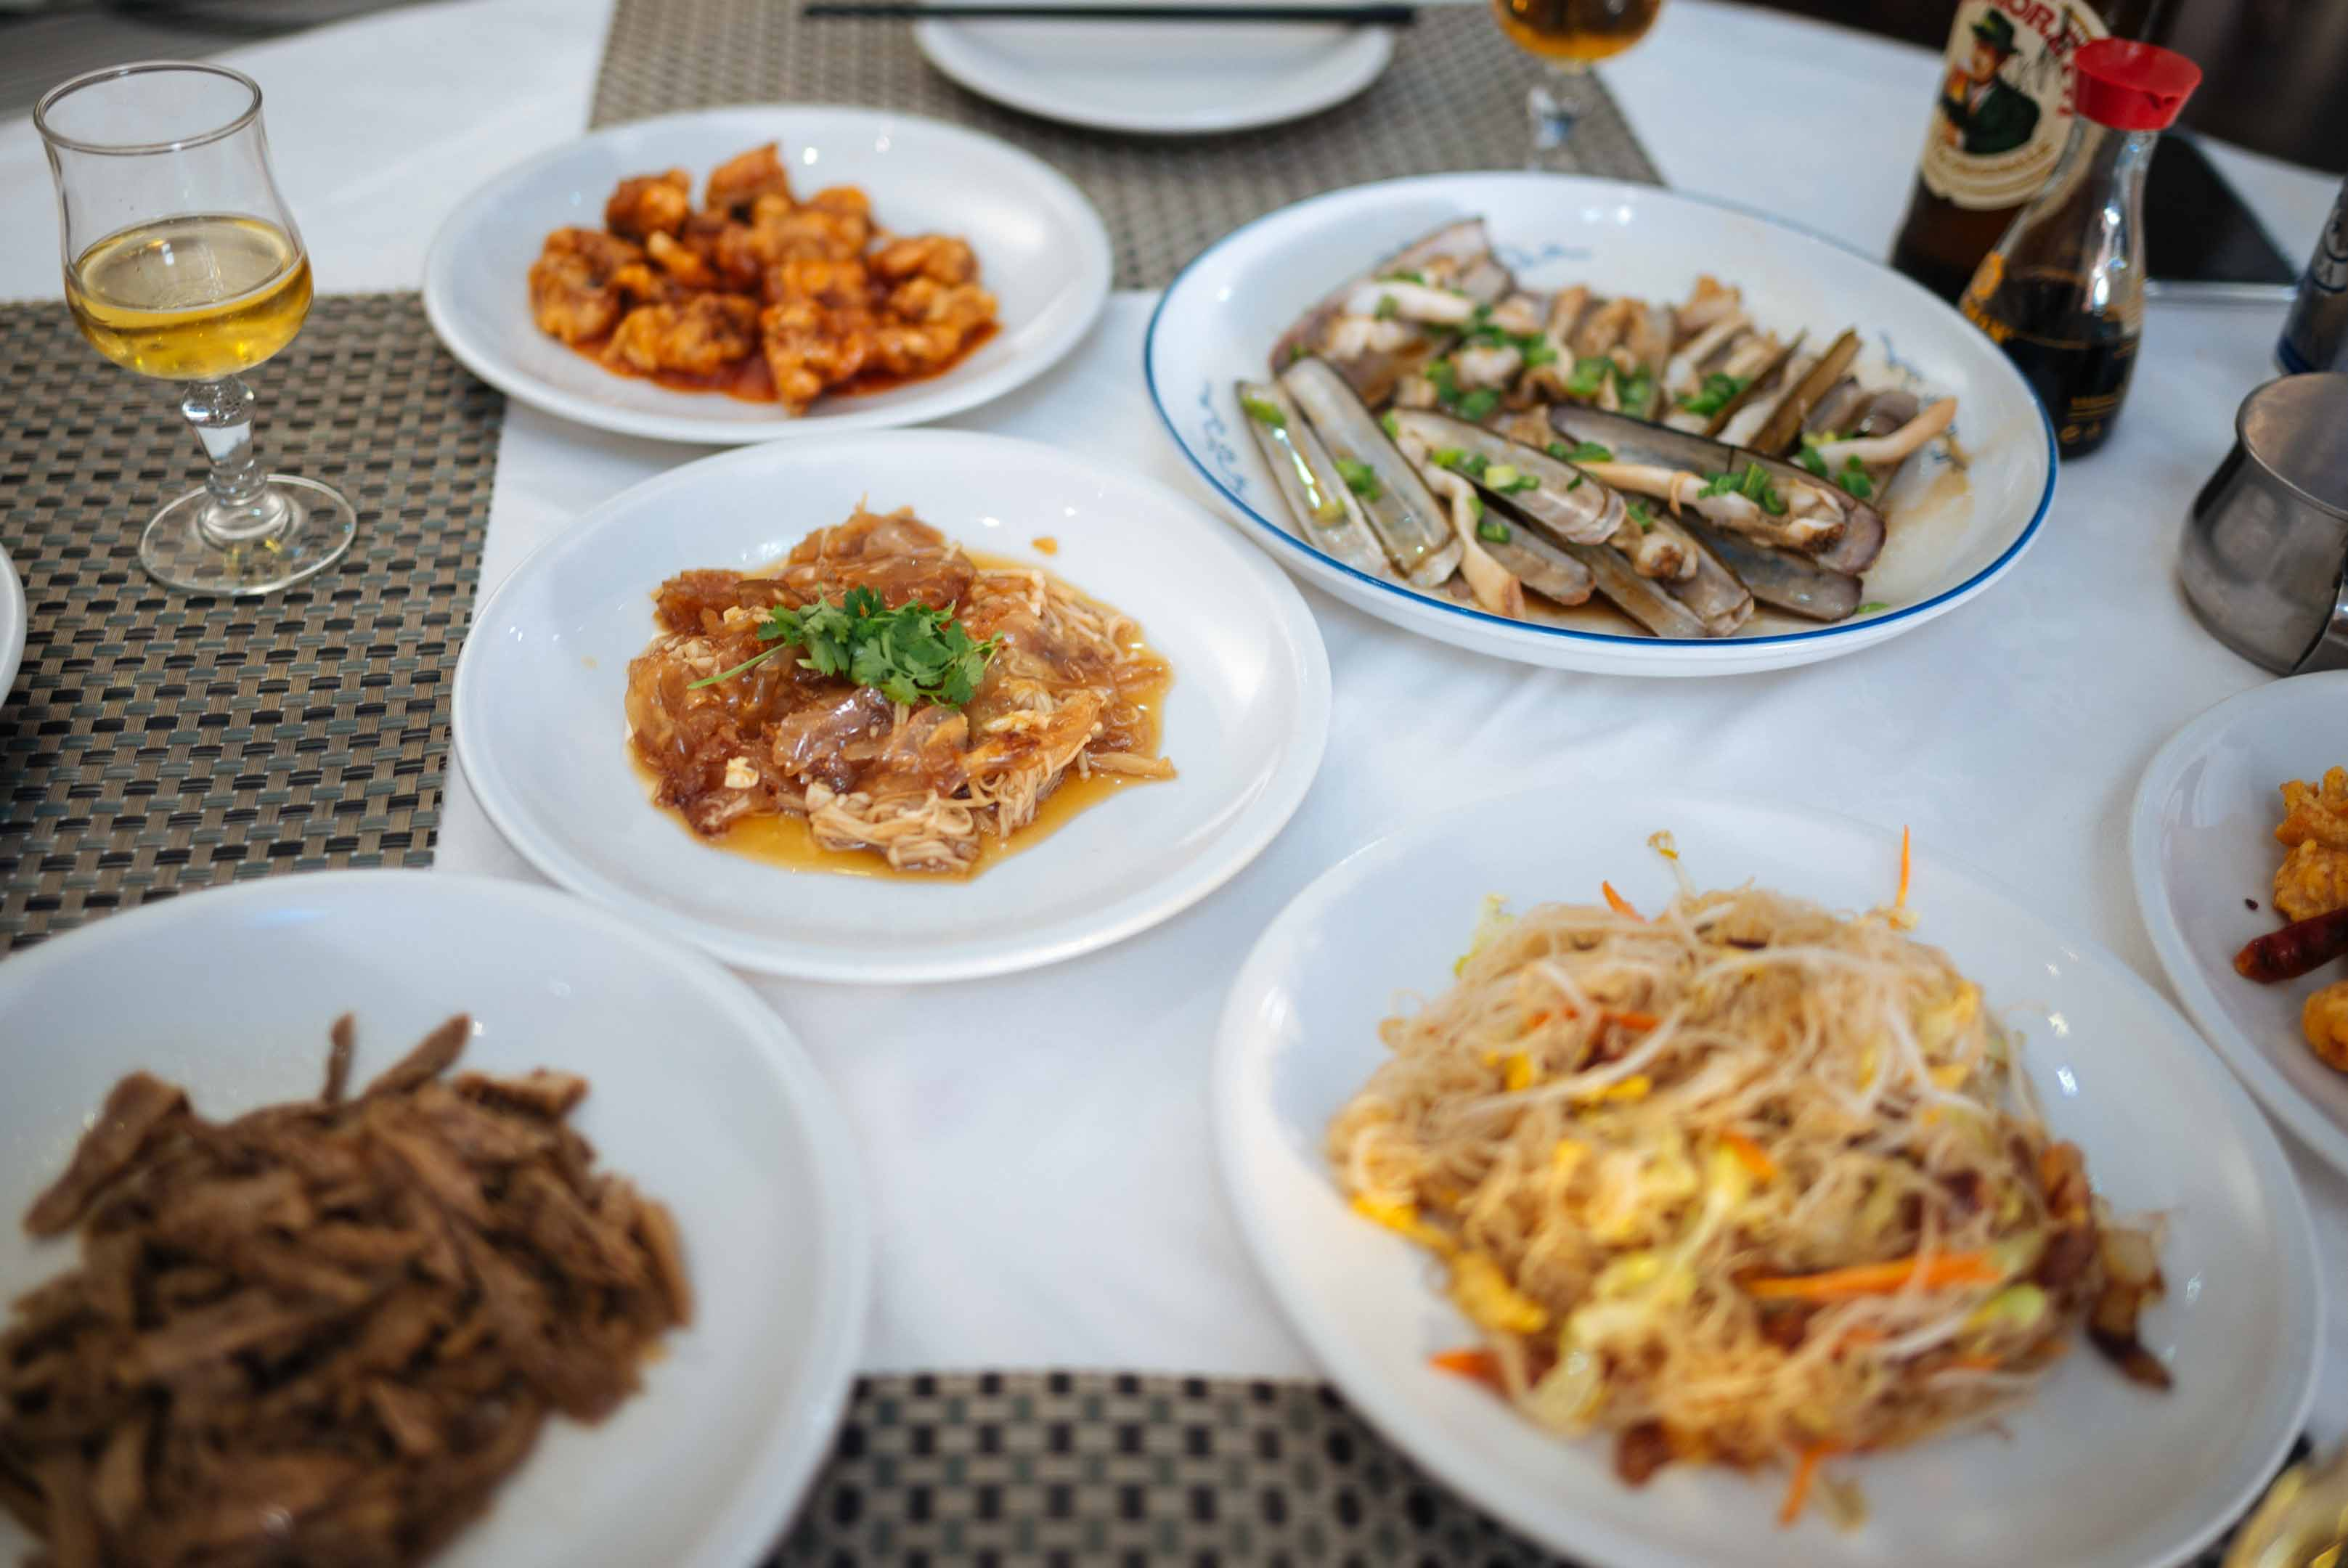 You'll find the best Chinese food in Torino at Grande Muraglia where locals go for pork, seafood, and even jellyfish dishes in Italy